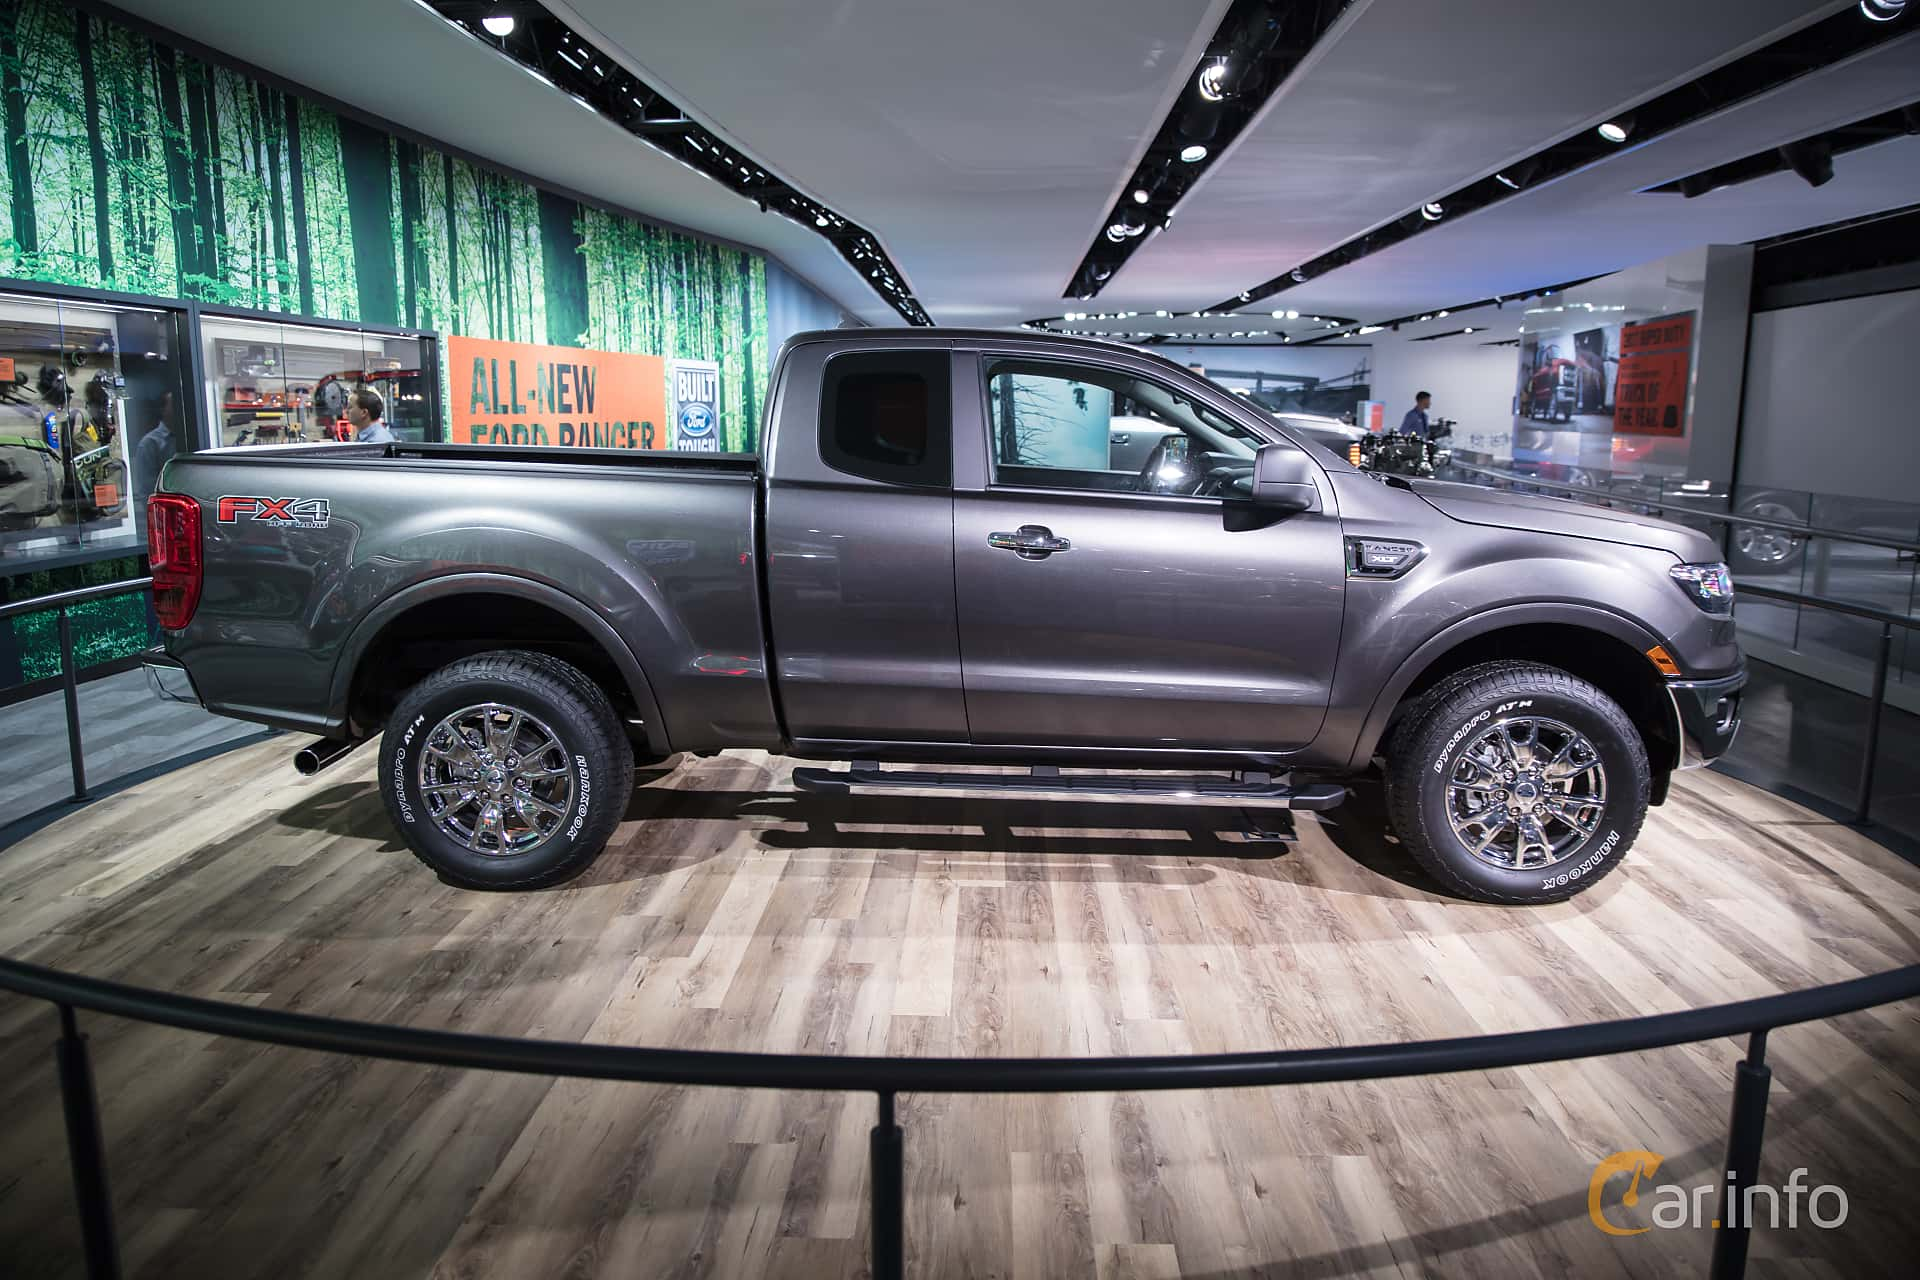 5 Images Of Ford Ranger Supercab 2 3 Ecoboost 4x4